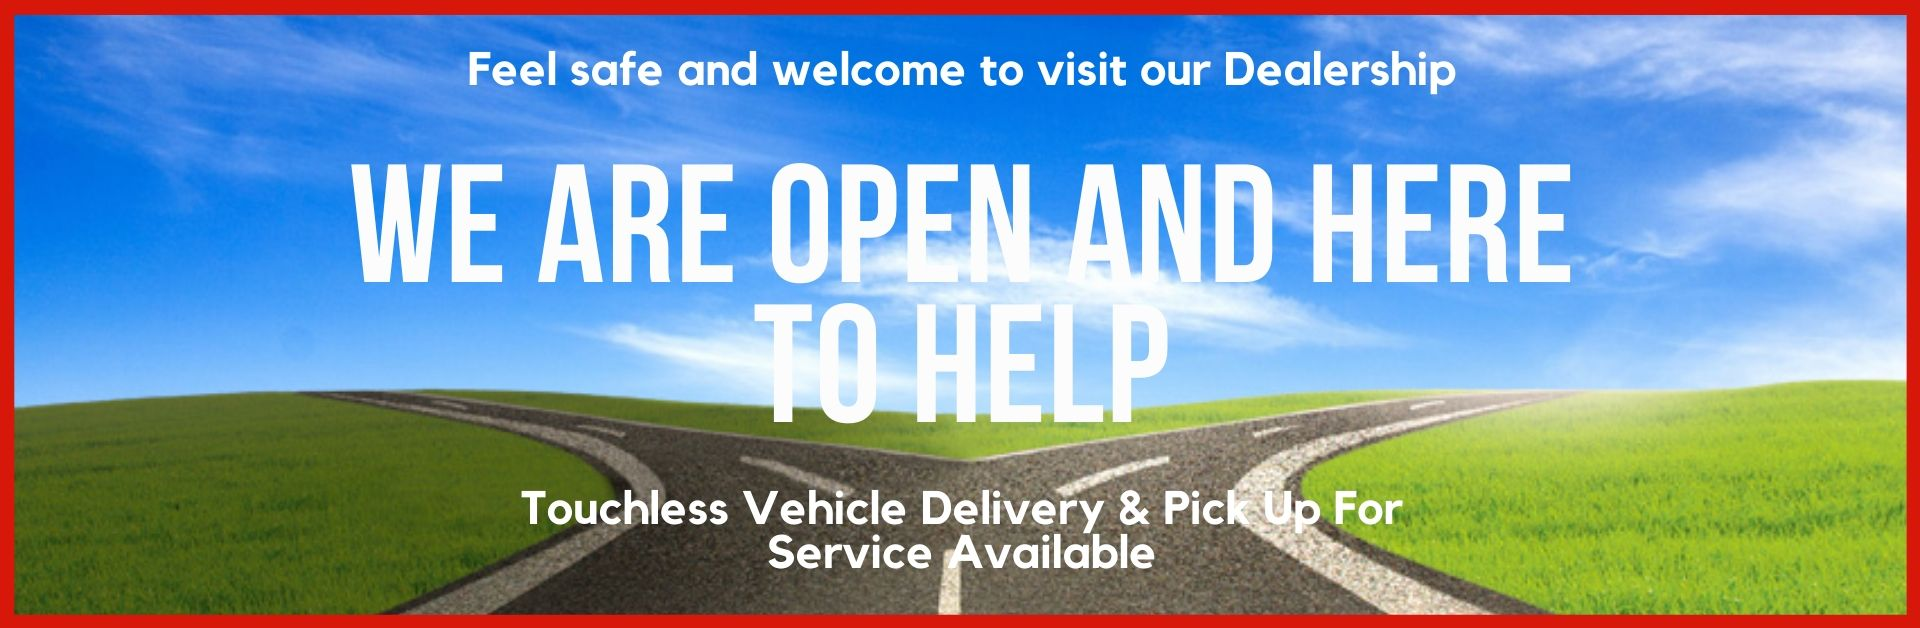 Vehicle Service - we are open and here to help